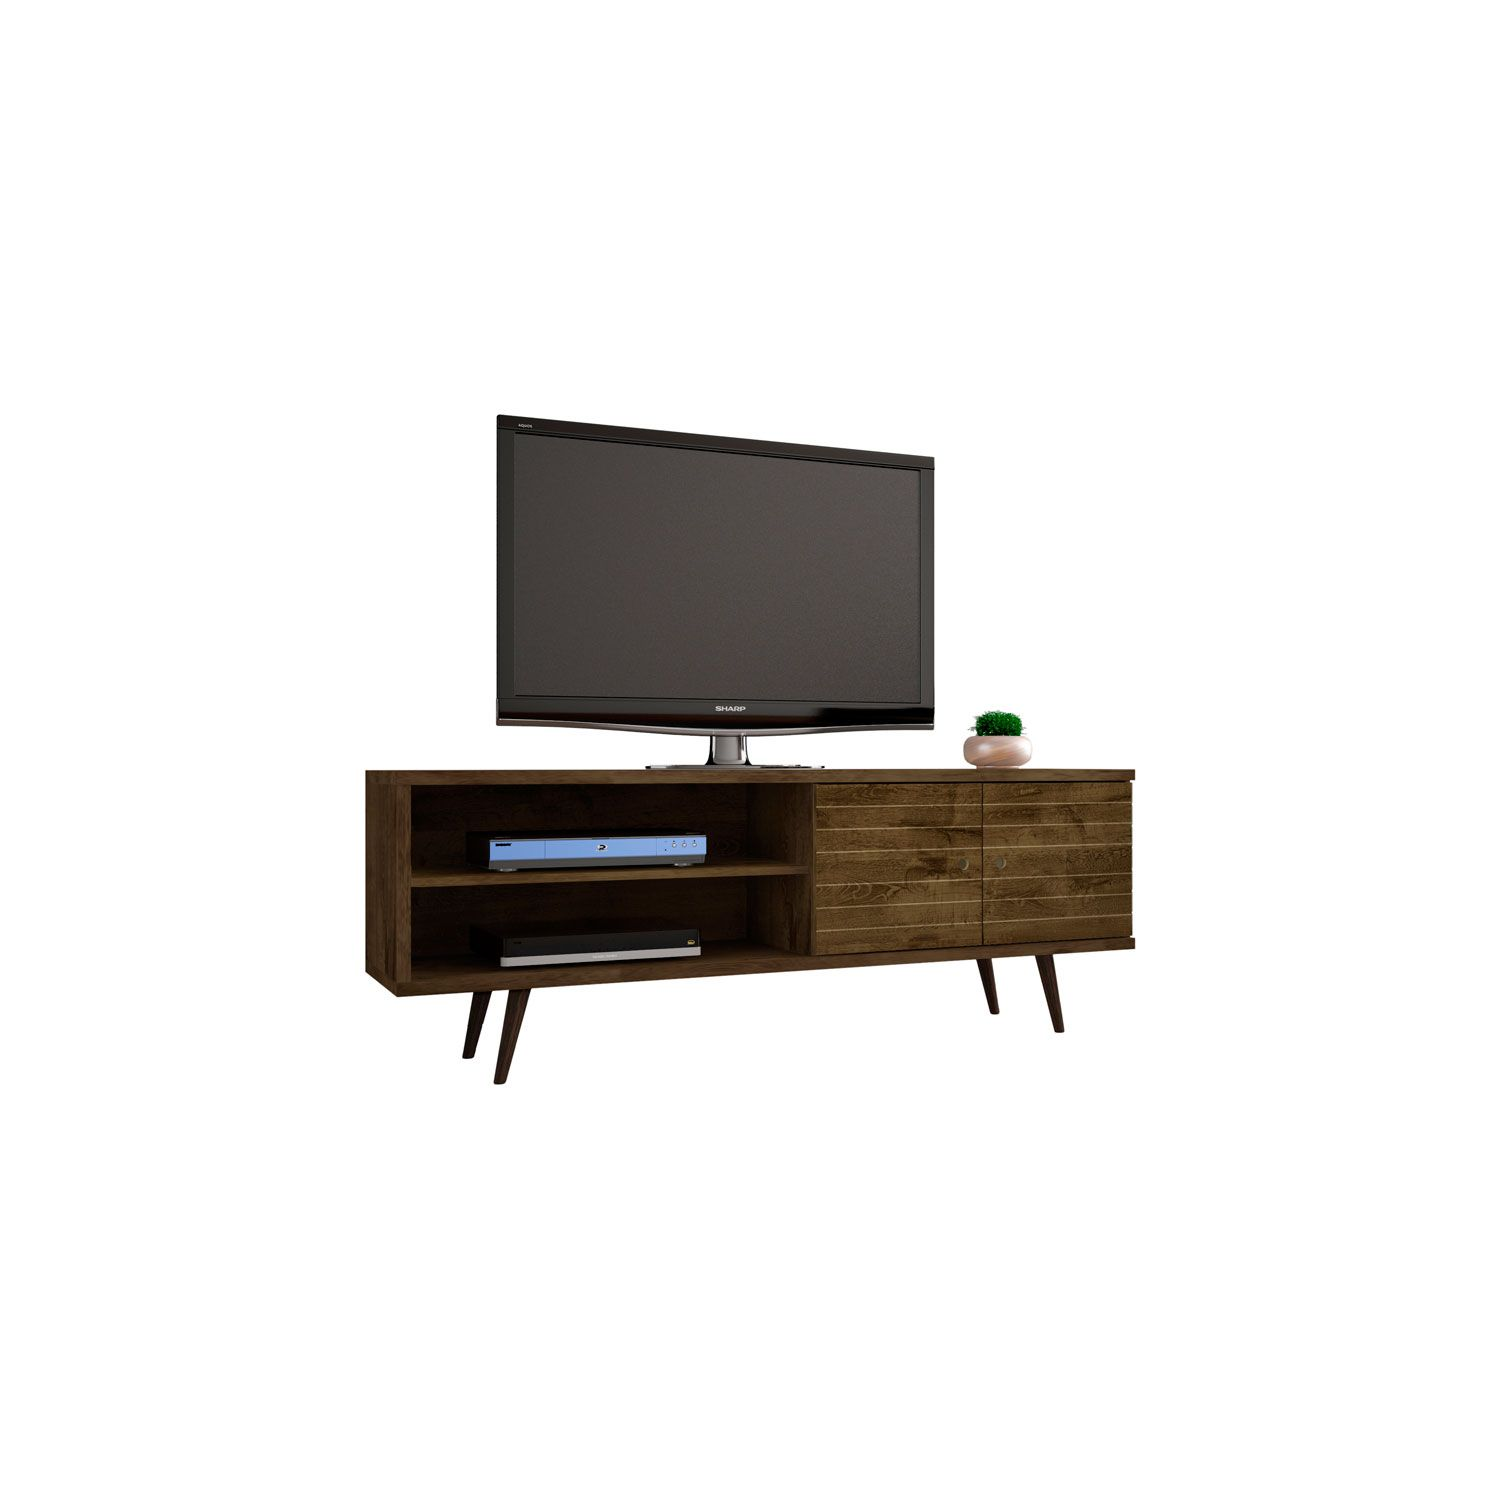 Manhattan Comfort Liberty 63 Inch Tv Stand With 3 Shelves And 2 Doors In Rustic Brown With So Mid Century Modern Tv Stand Modern Tv Stand Modern Tv Stand White